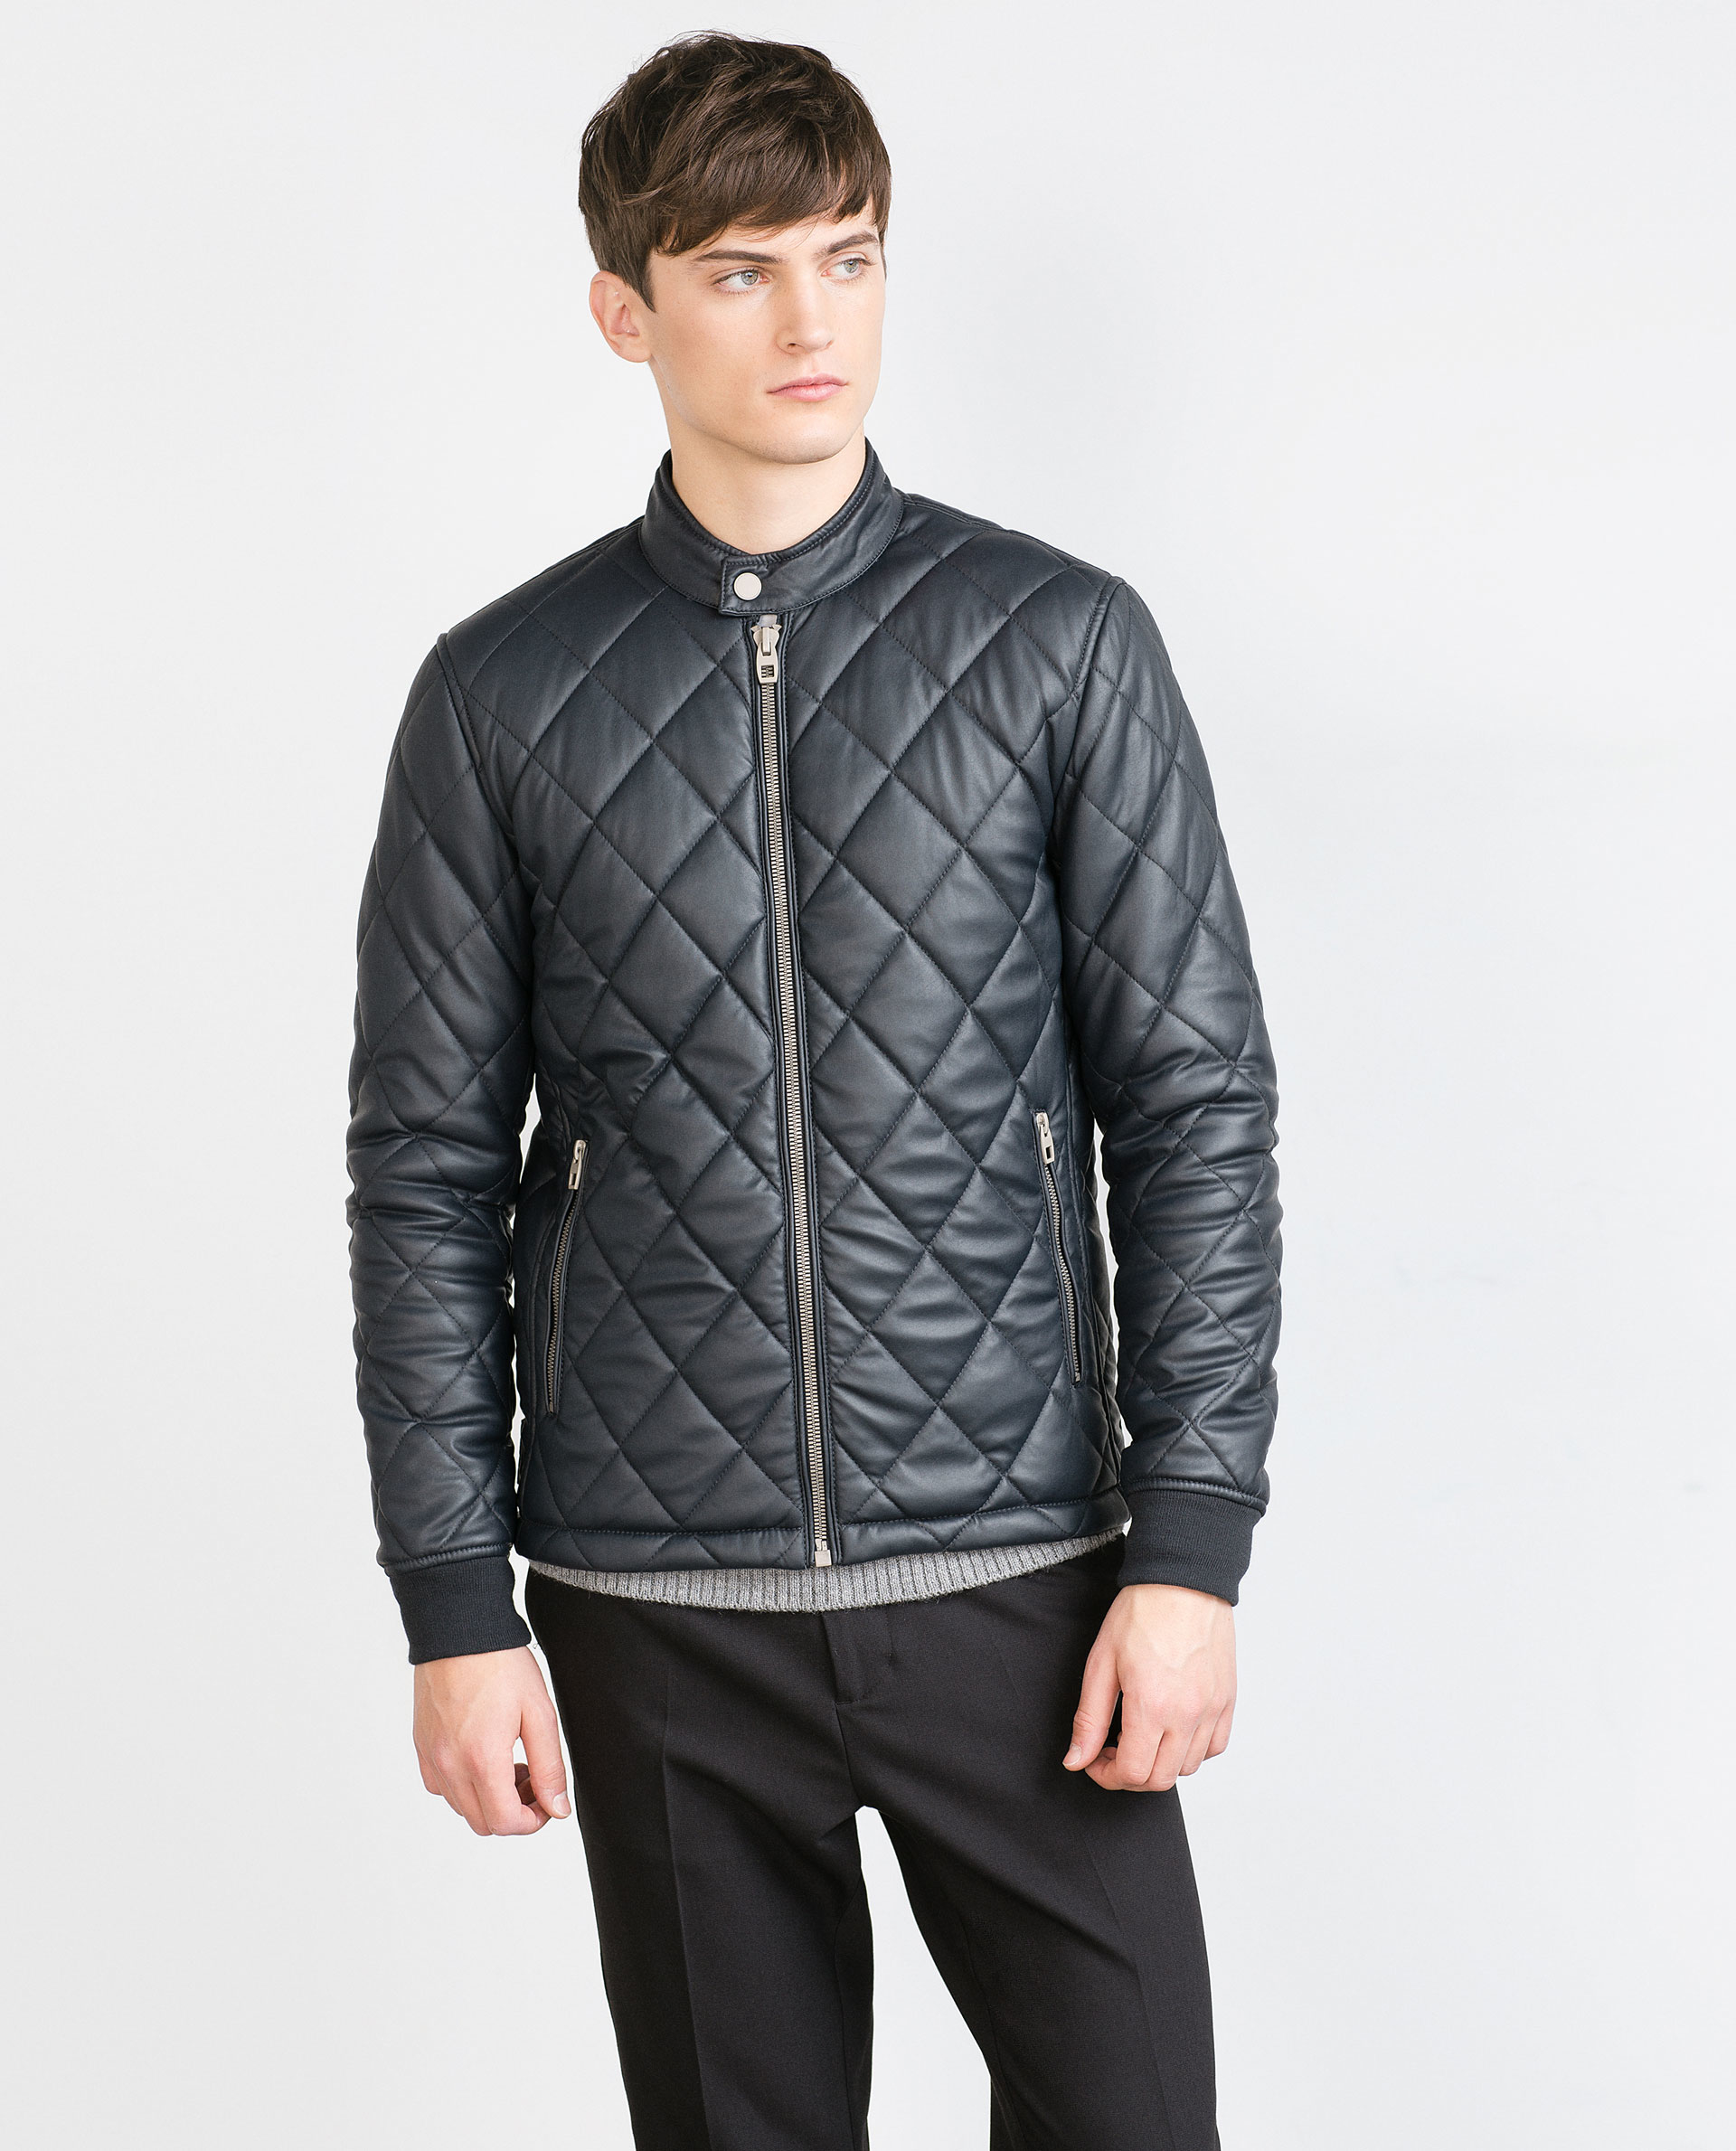 Zara mens quilted leather jacket